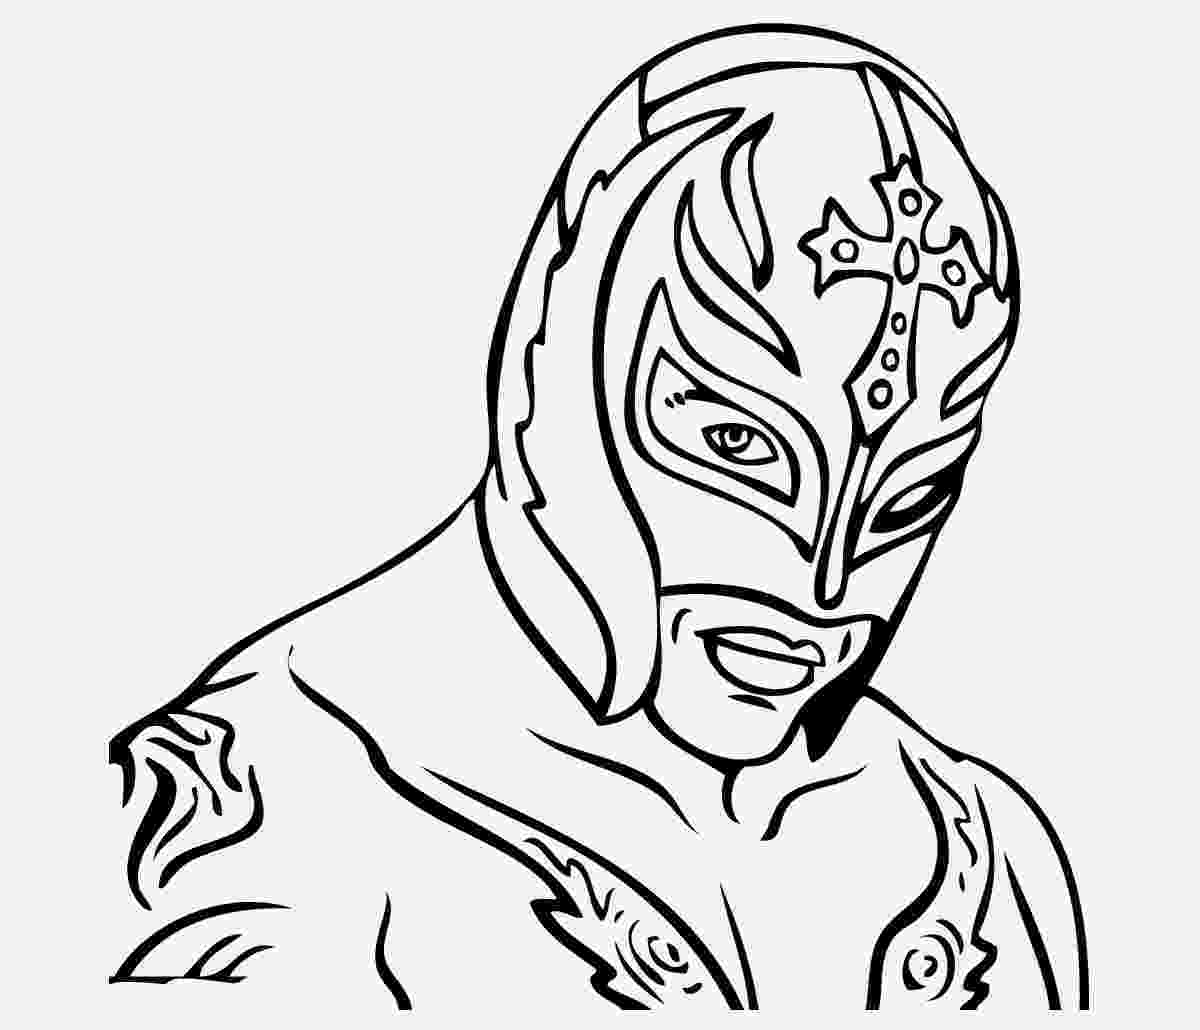 rey mysterio coloring pages rey coloring page at getcoloringscom free printable coloring mysterio rey pages